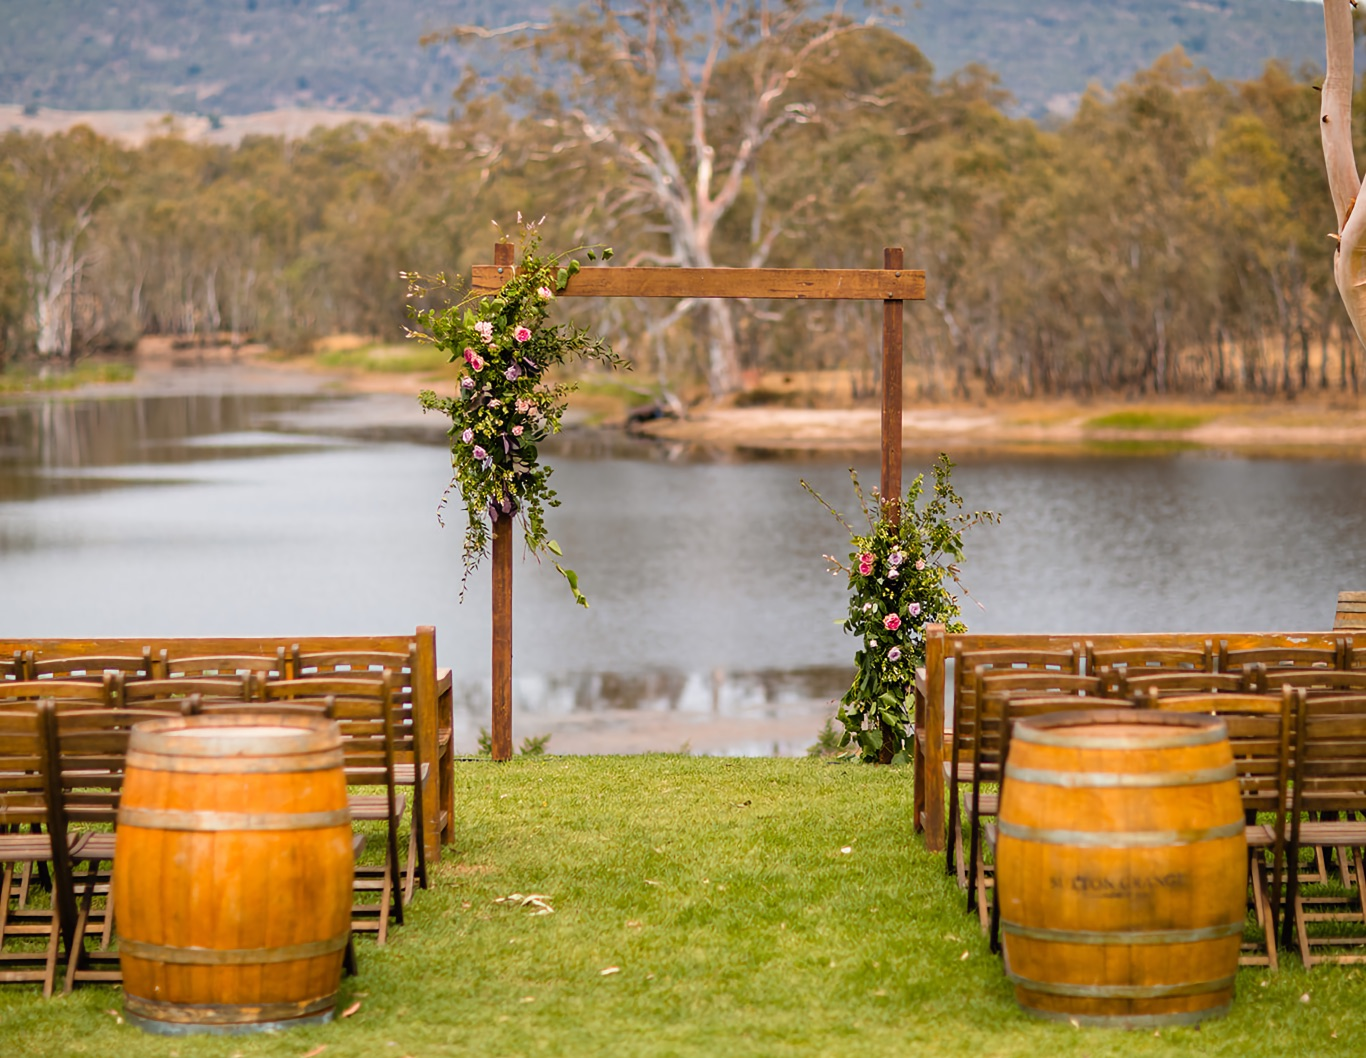 Wedding asile and archway overlooking water.